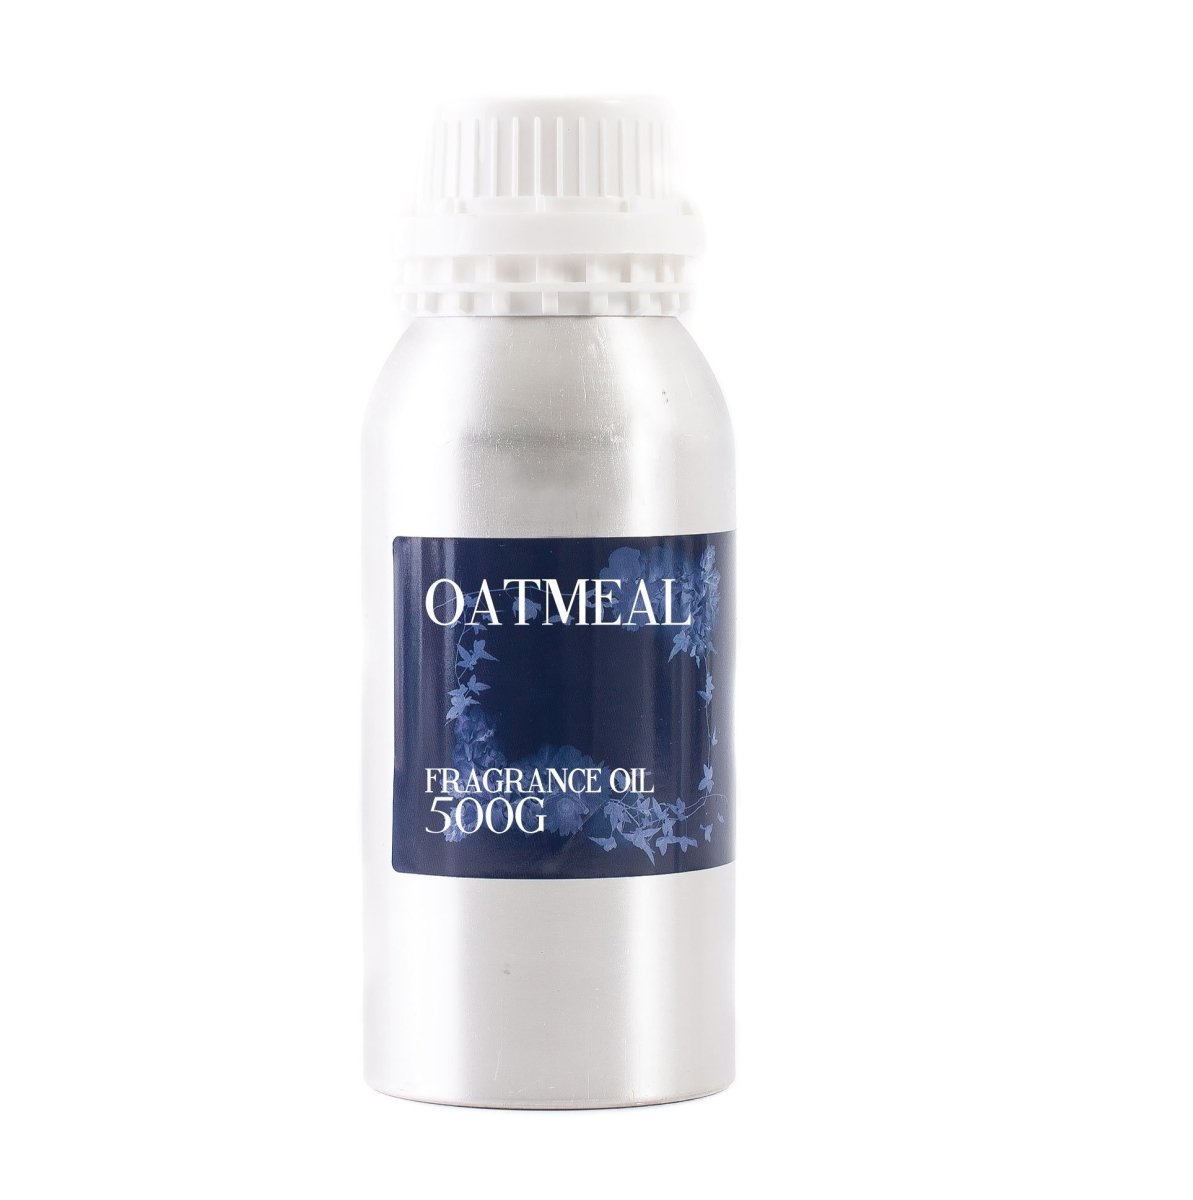 Oatmeal Fragrance Oil - Mystic Moments UK